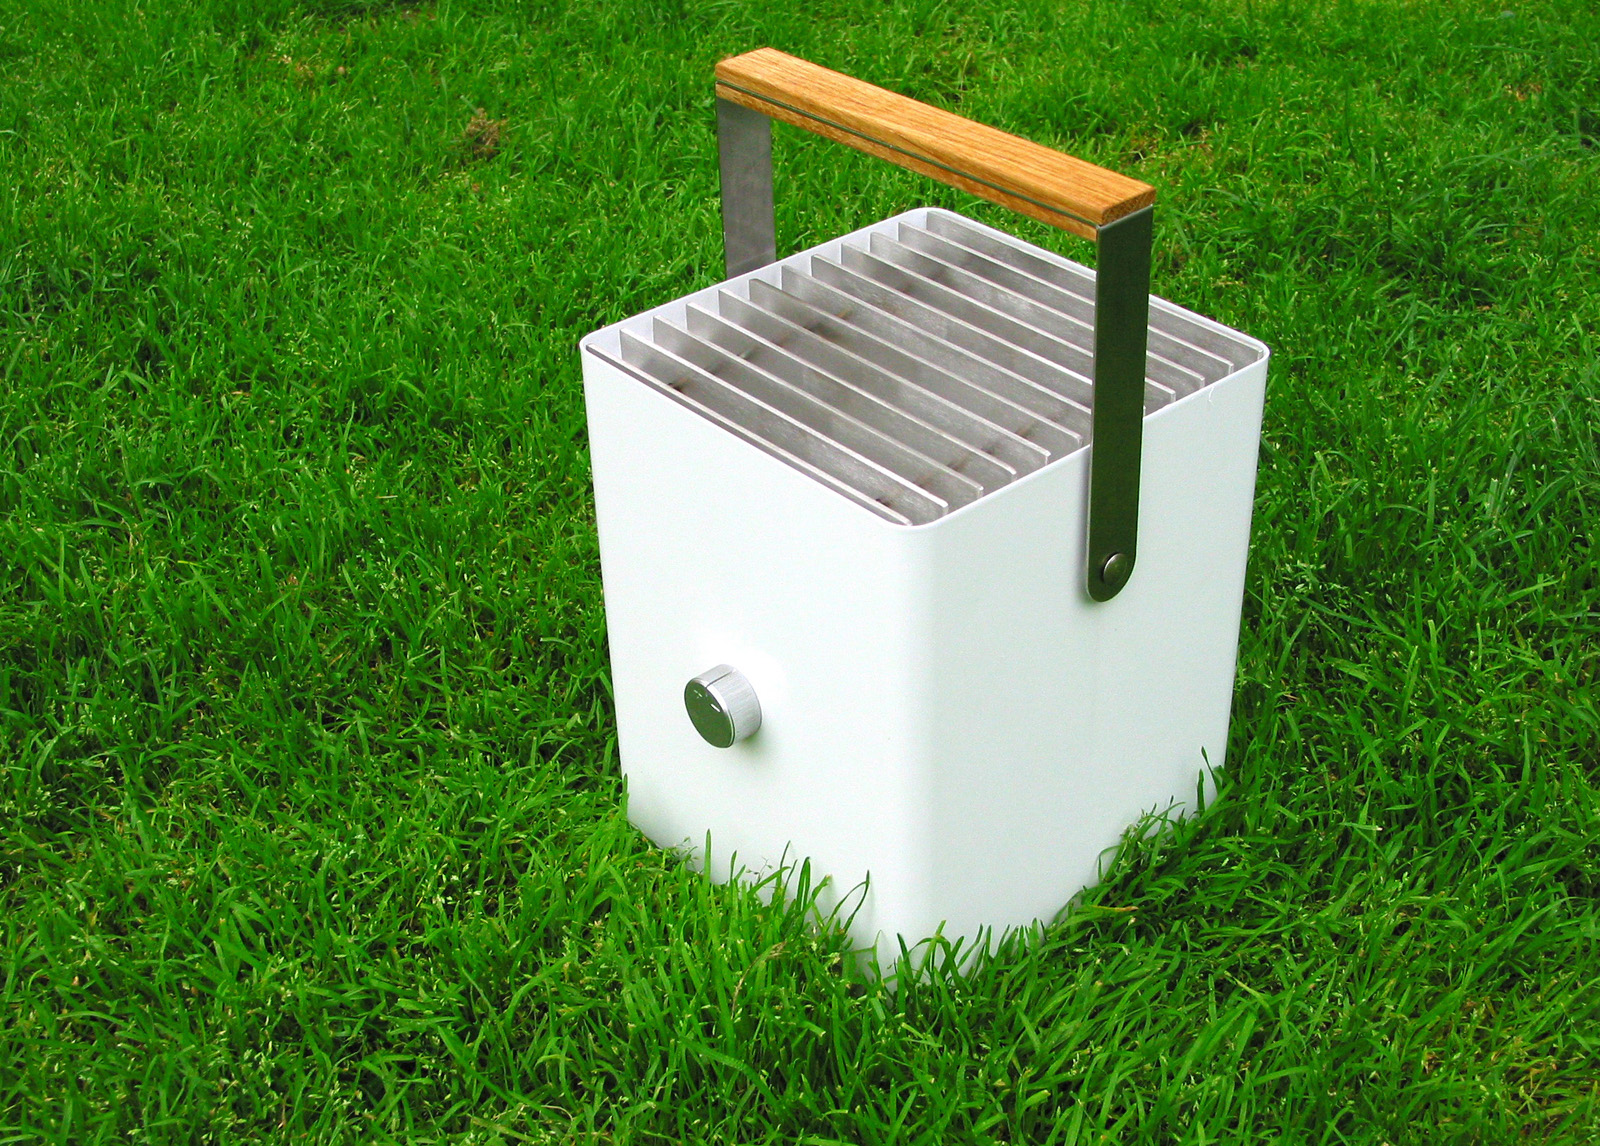 The Cityboy Picnic Grill by designer Klaus Aalto for Finnish manufacturer Selki-Asema.